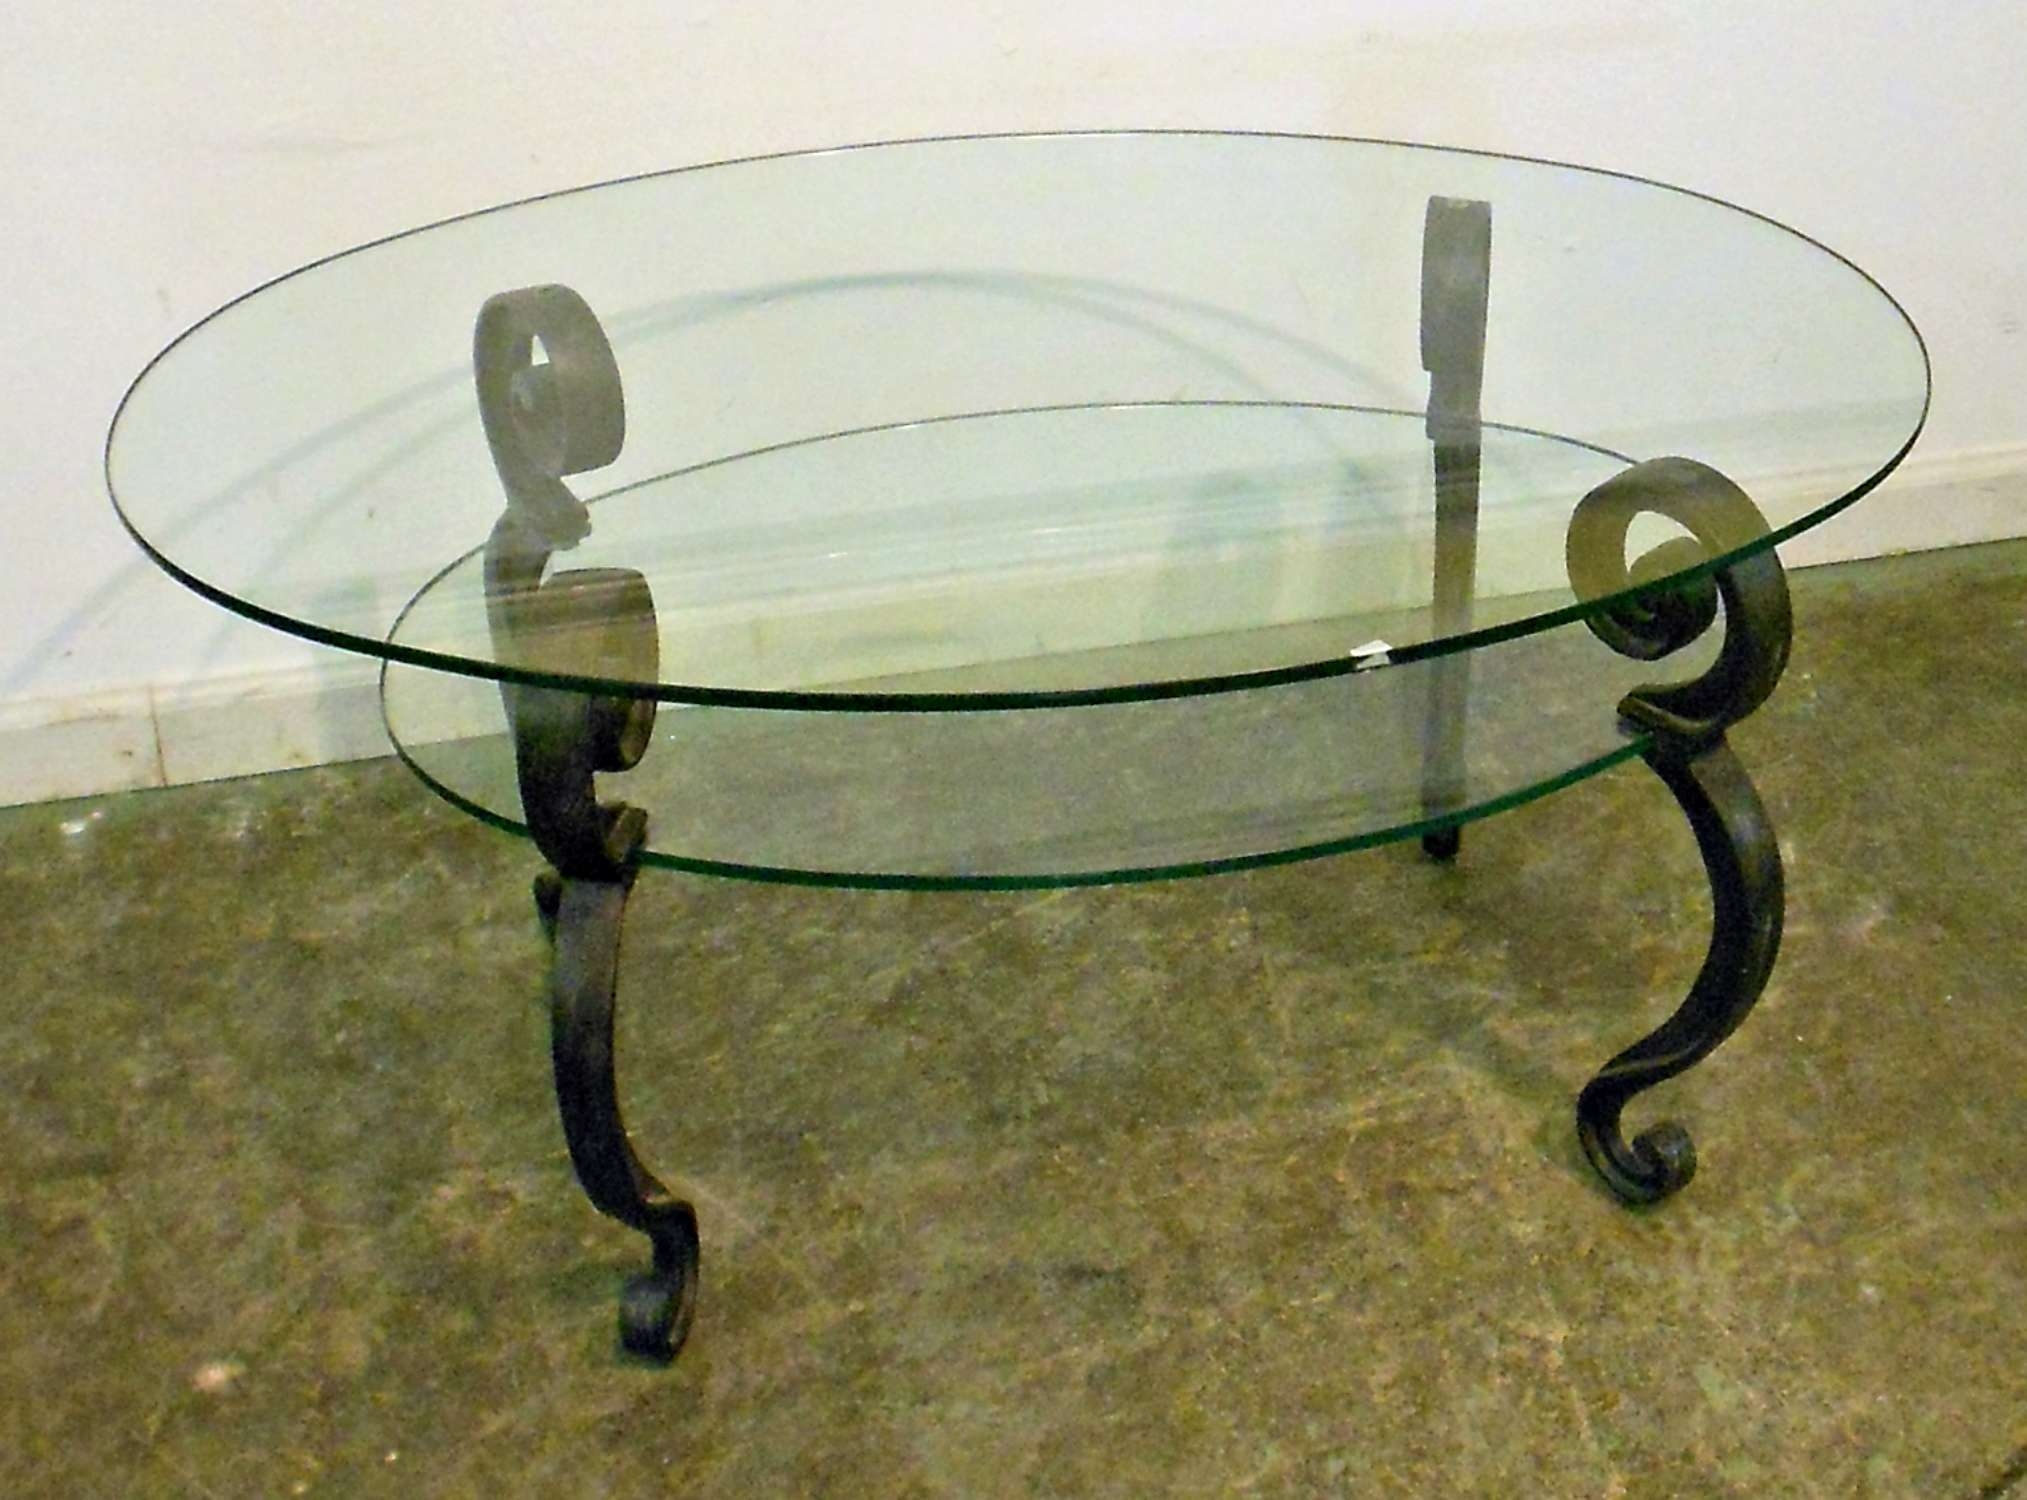 Vintage Glass Top Coffee Table With Black Metal Legs And Shelves With Regard To Popular Antique Glass Top Coffee Tables (View 16 of 20)